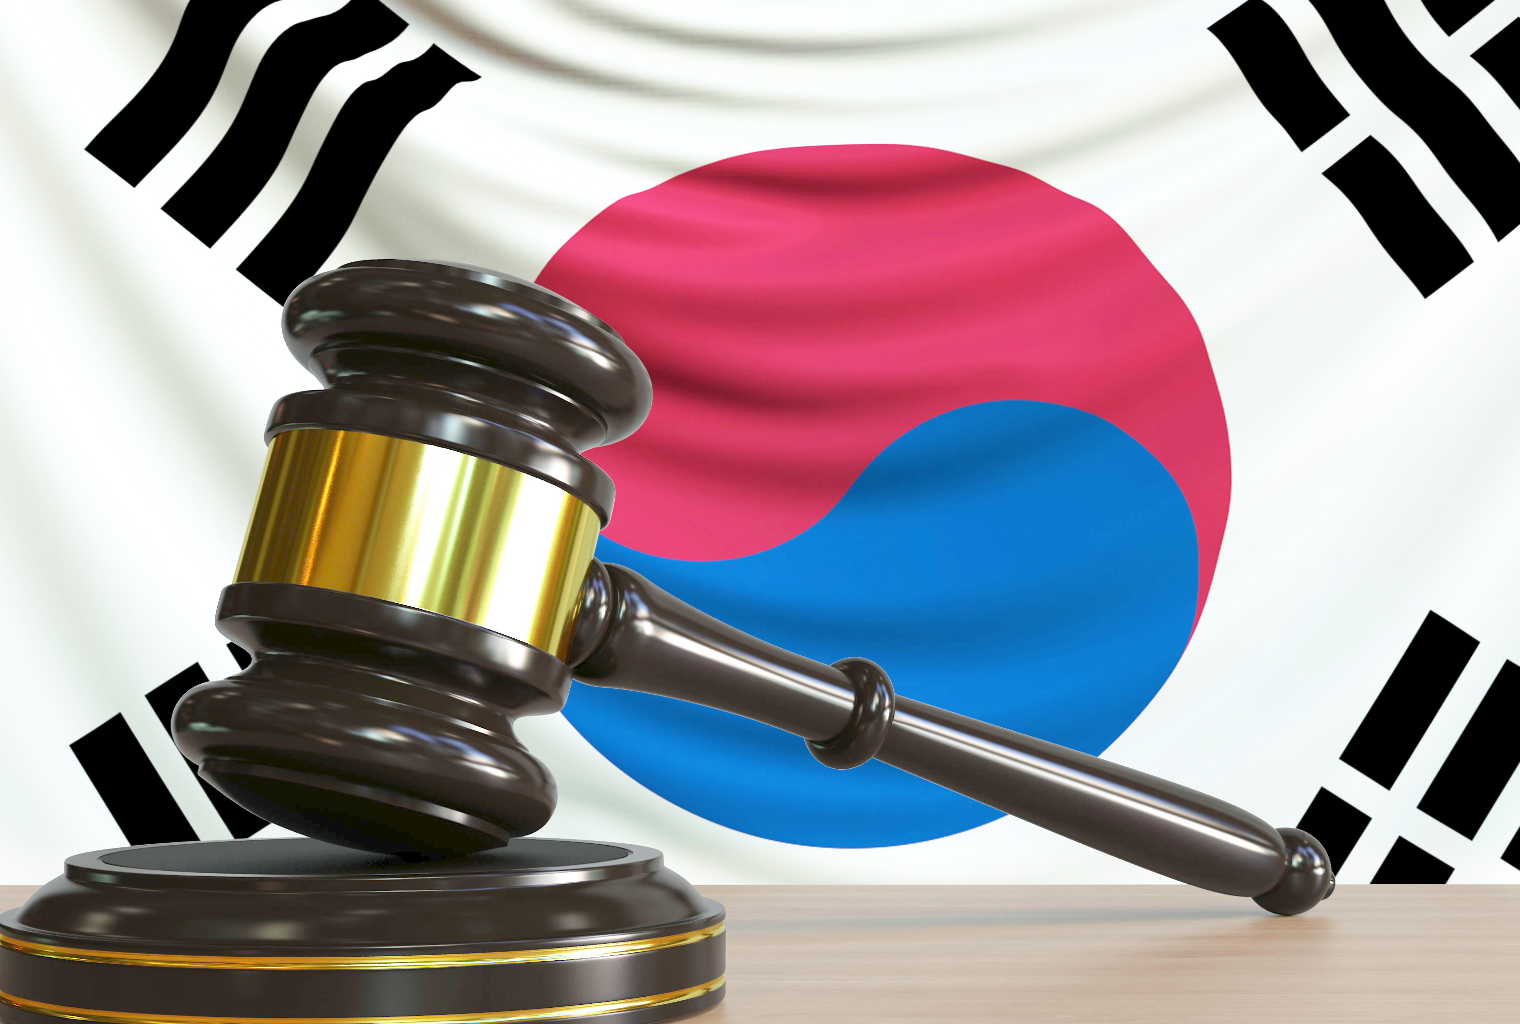 South Korean Exchange CEO Sentenced to 16 Years in Prison